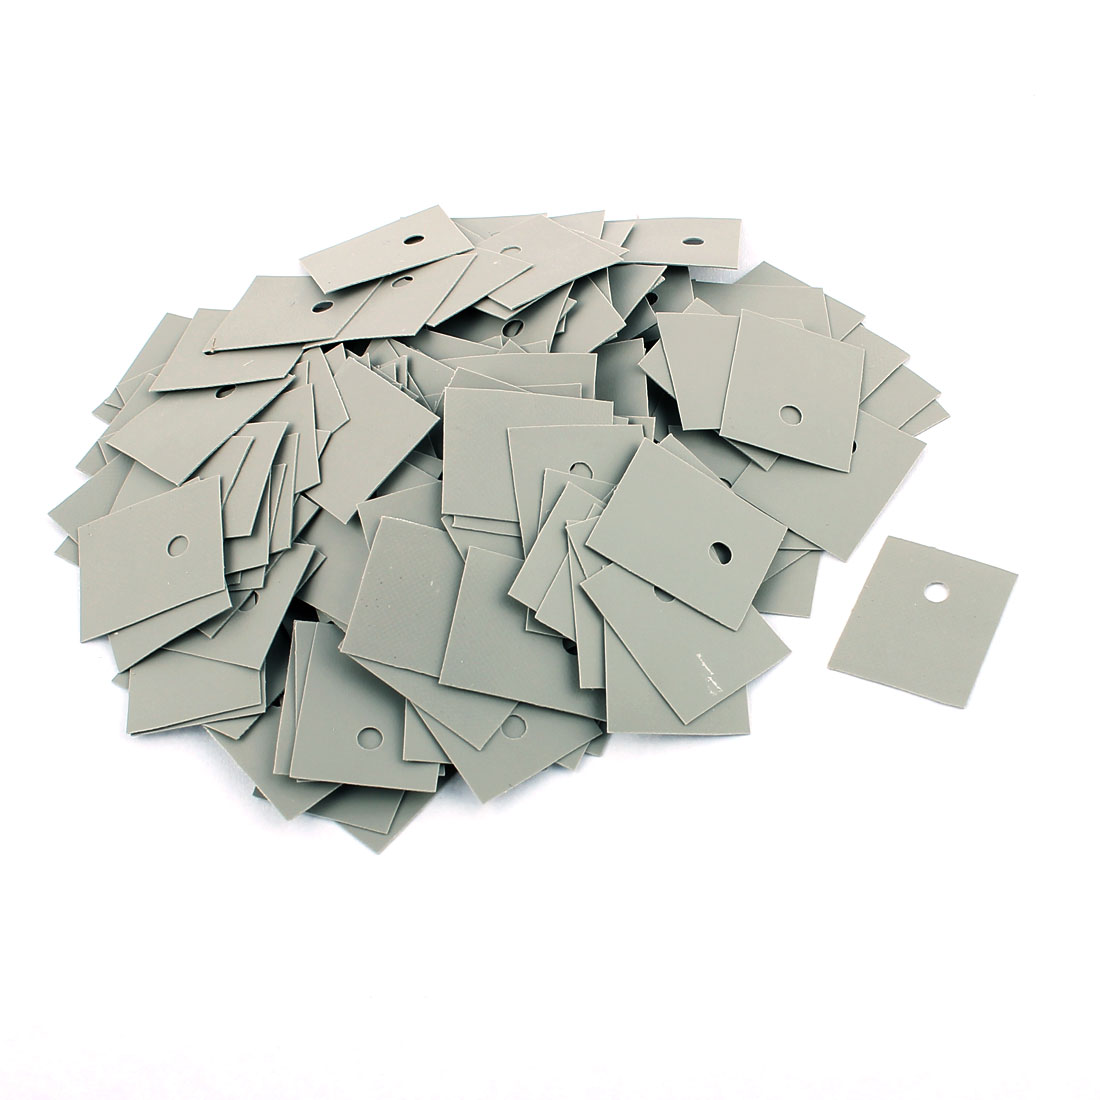 250 Pcs 22mm x 18mm x 0.2mm Silicone Thermal Insulation Pad Sheet